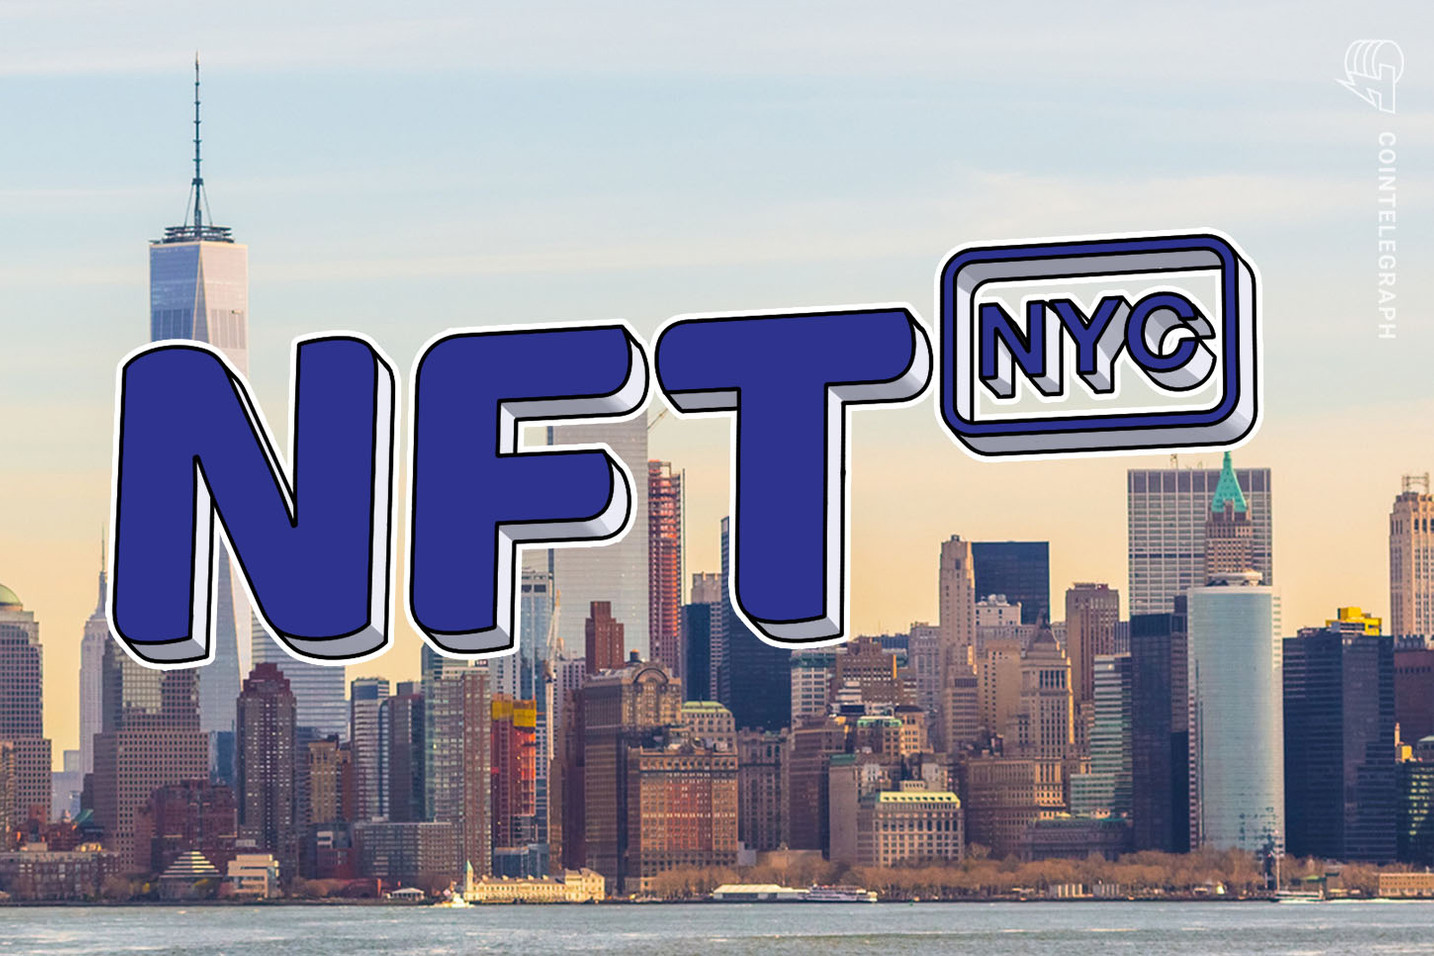 NFTs or Non-Fungible Tokens Are a New Way of Creating Unique Digital Assets That We Control